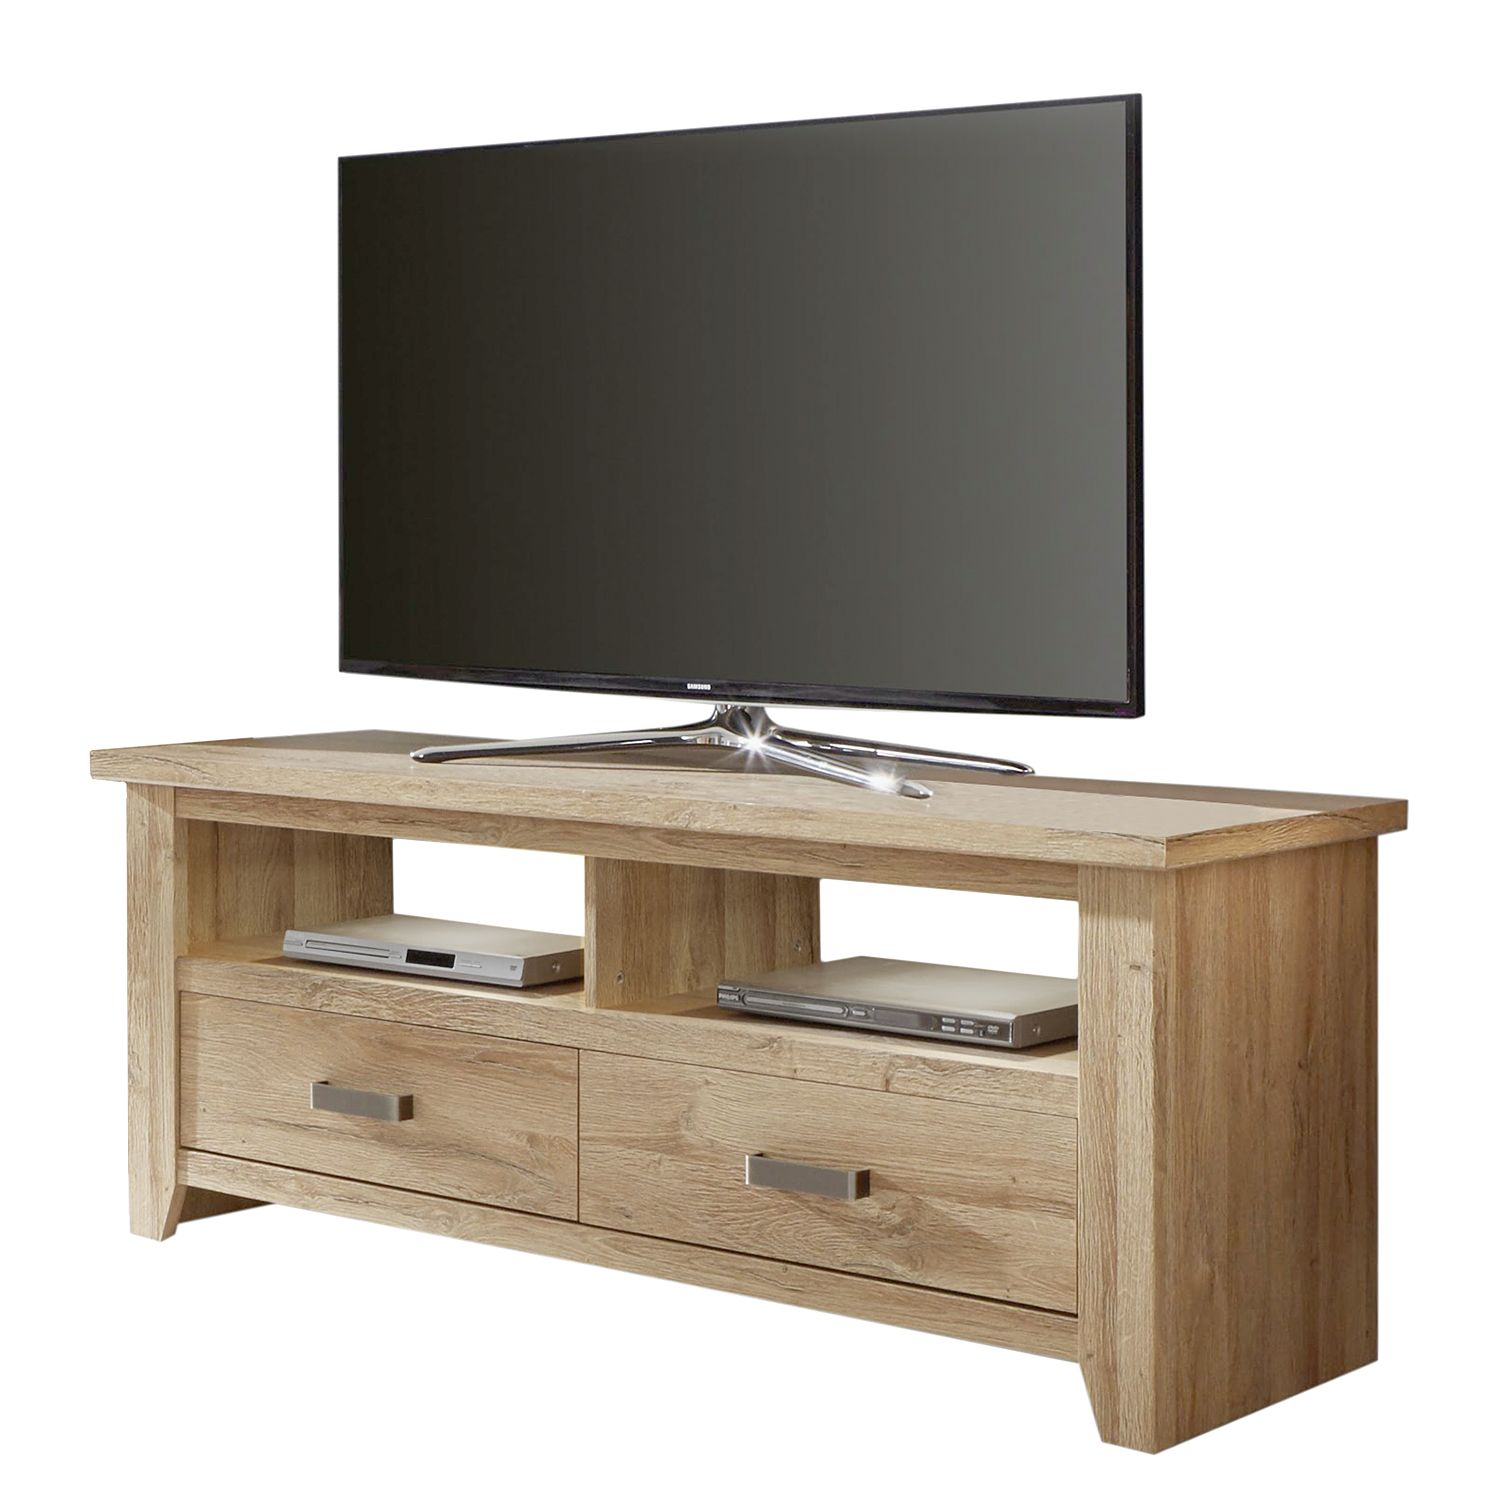 TV-Schrank Canyon I - Alteiche Dekor, Trendteam